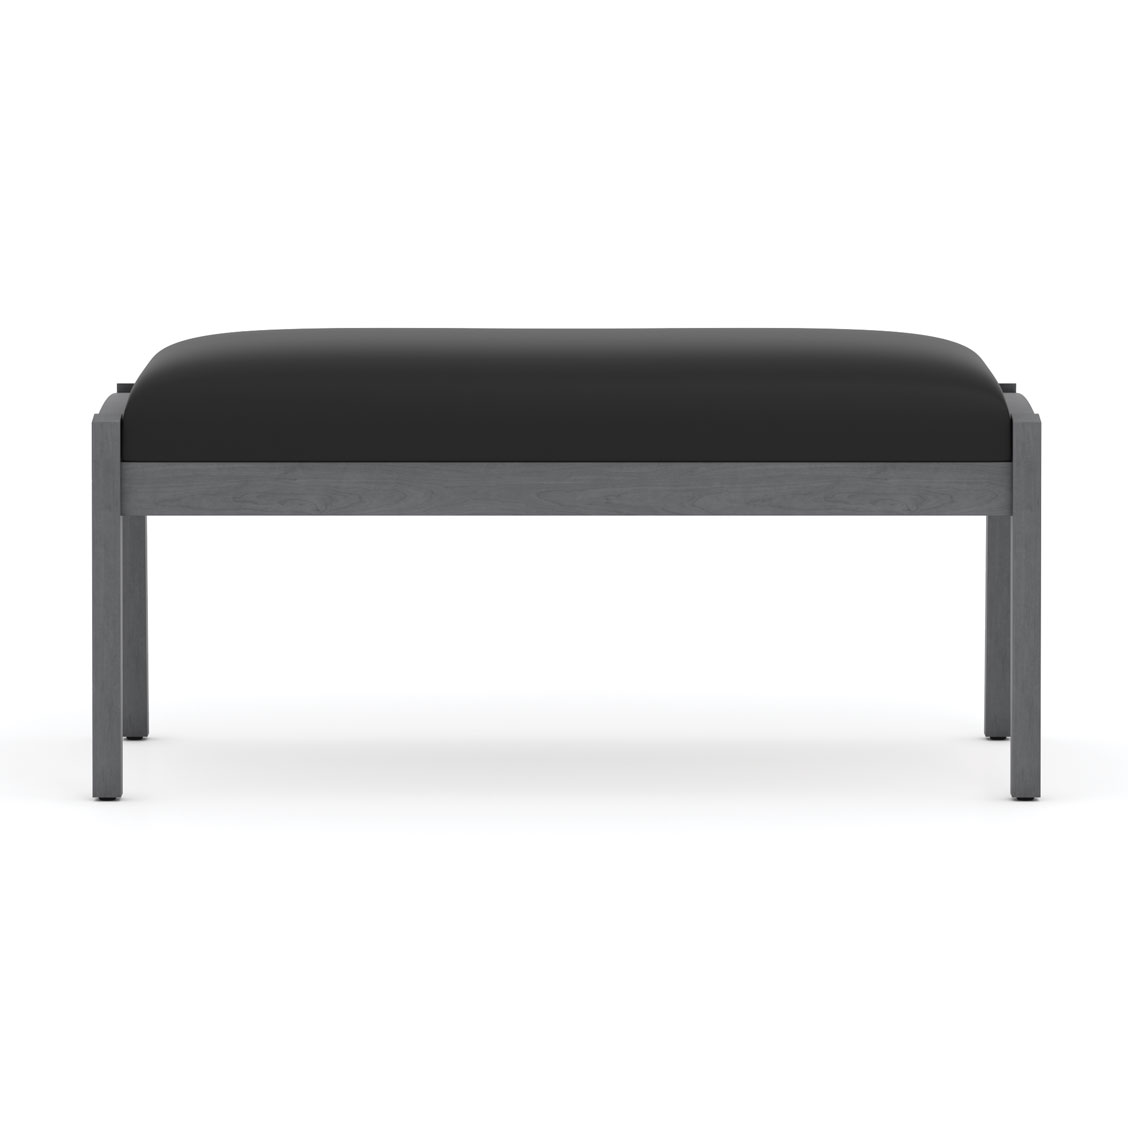 OfficeSource Chelsea Collection Designer Bench